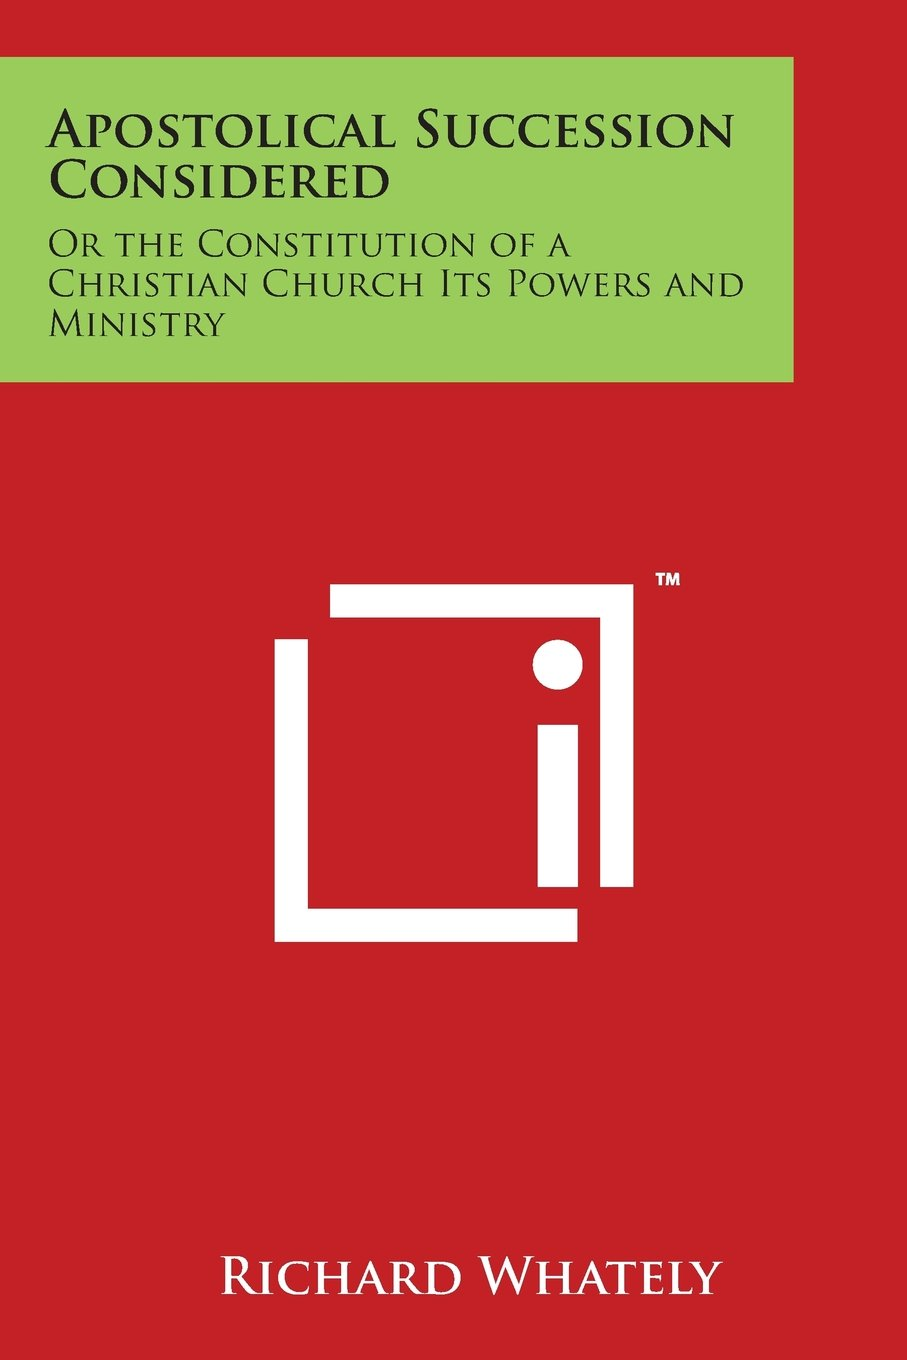 Read Online Apostolical Succession Considered: Or the Constitution of a Christian Church Its Powers and Ministry pdf epub